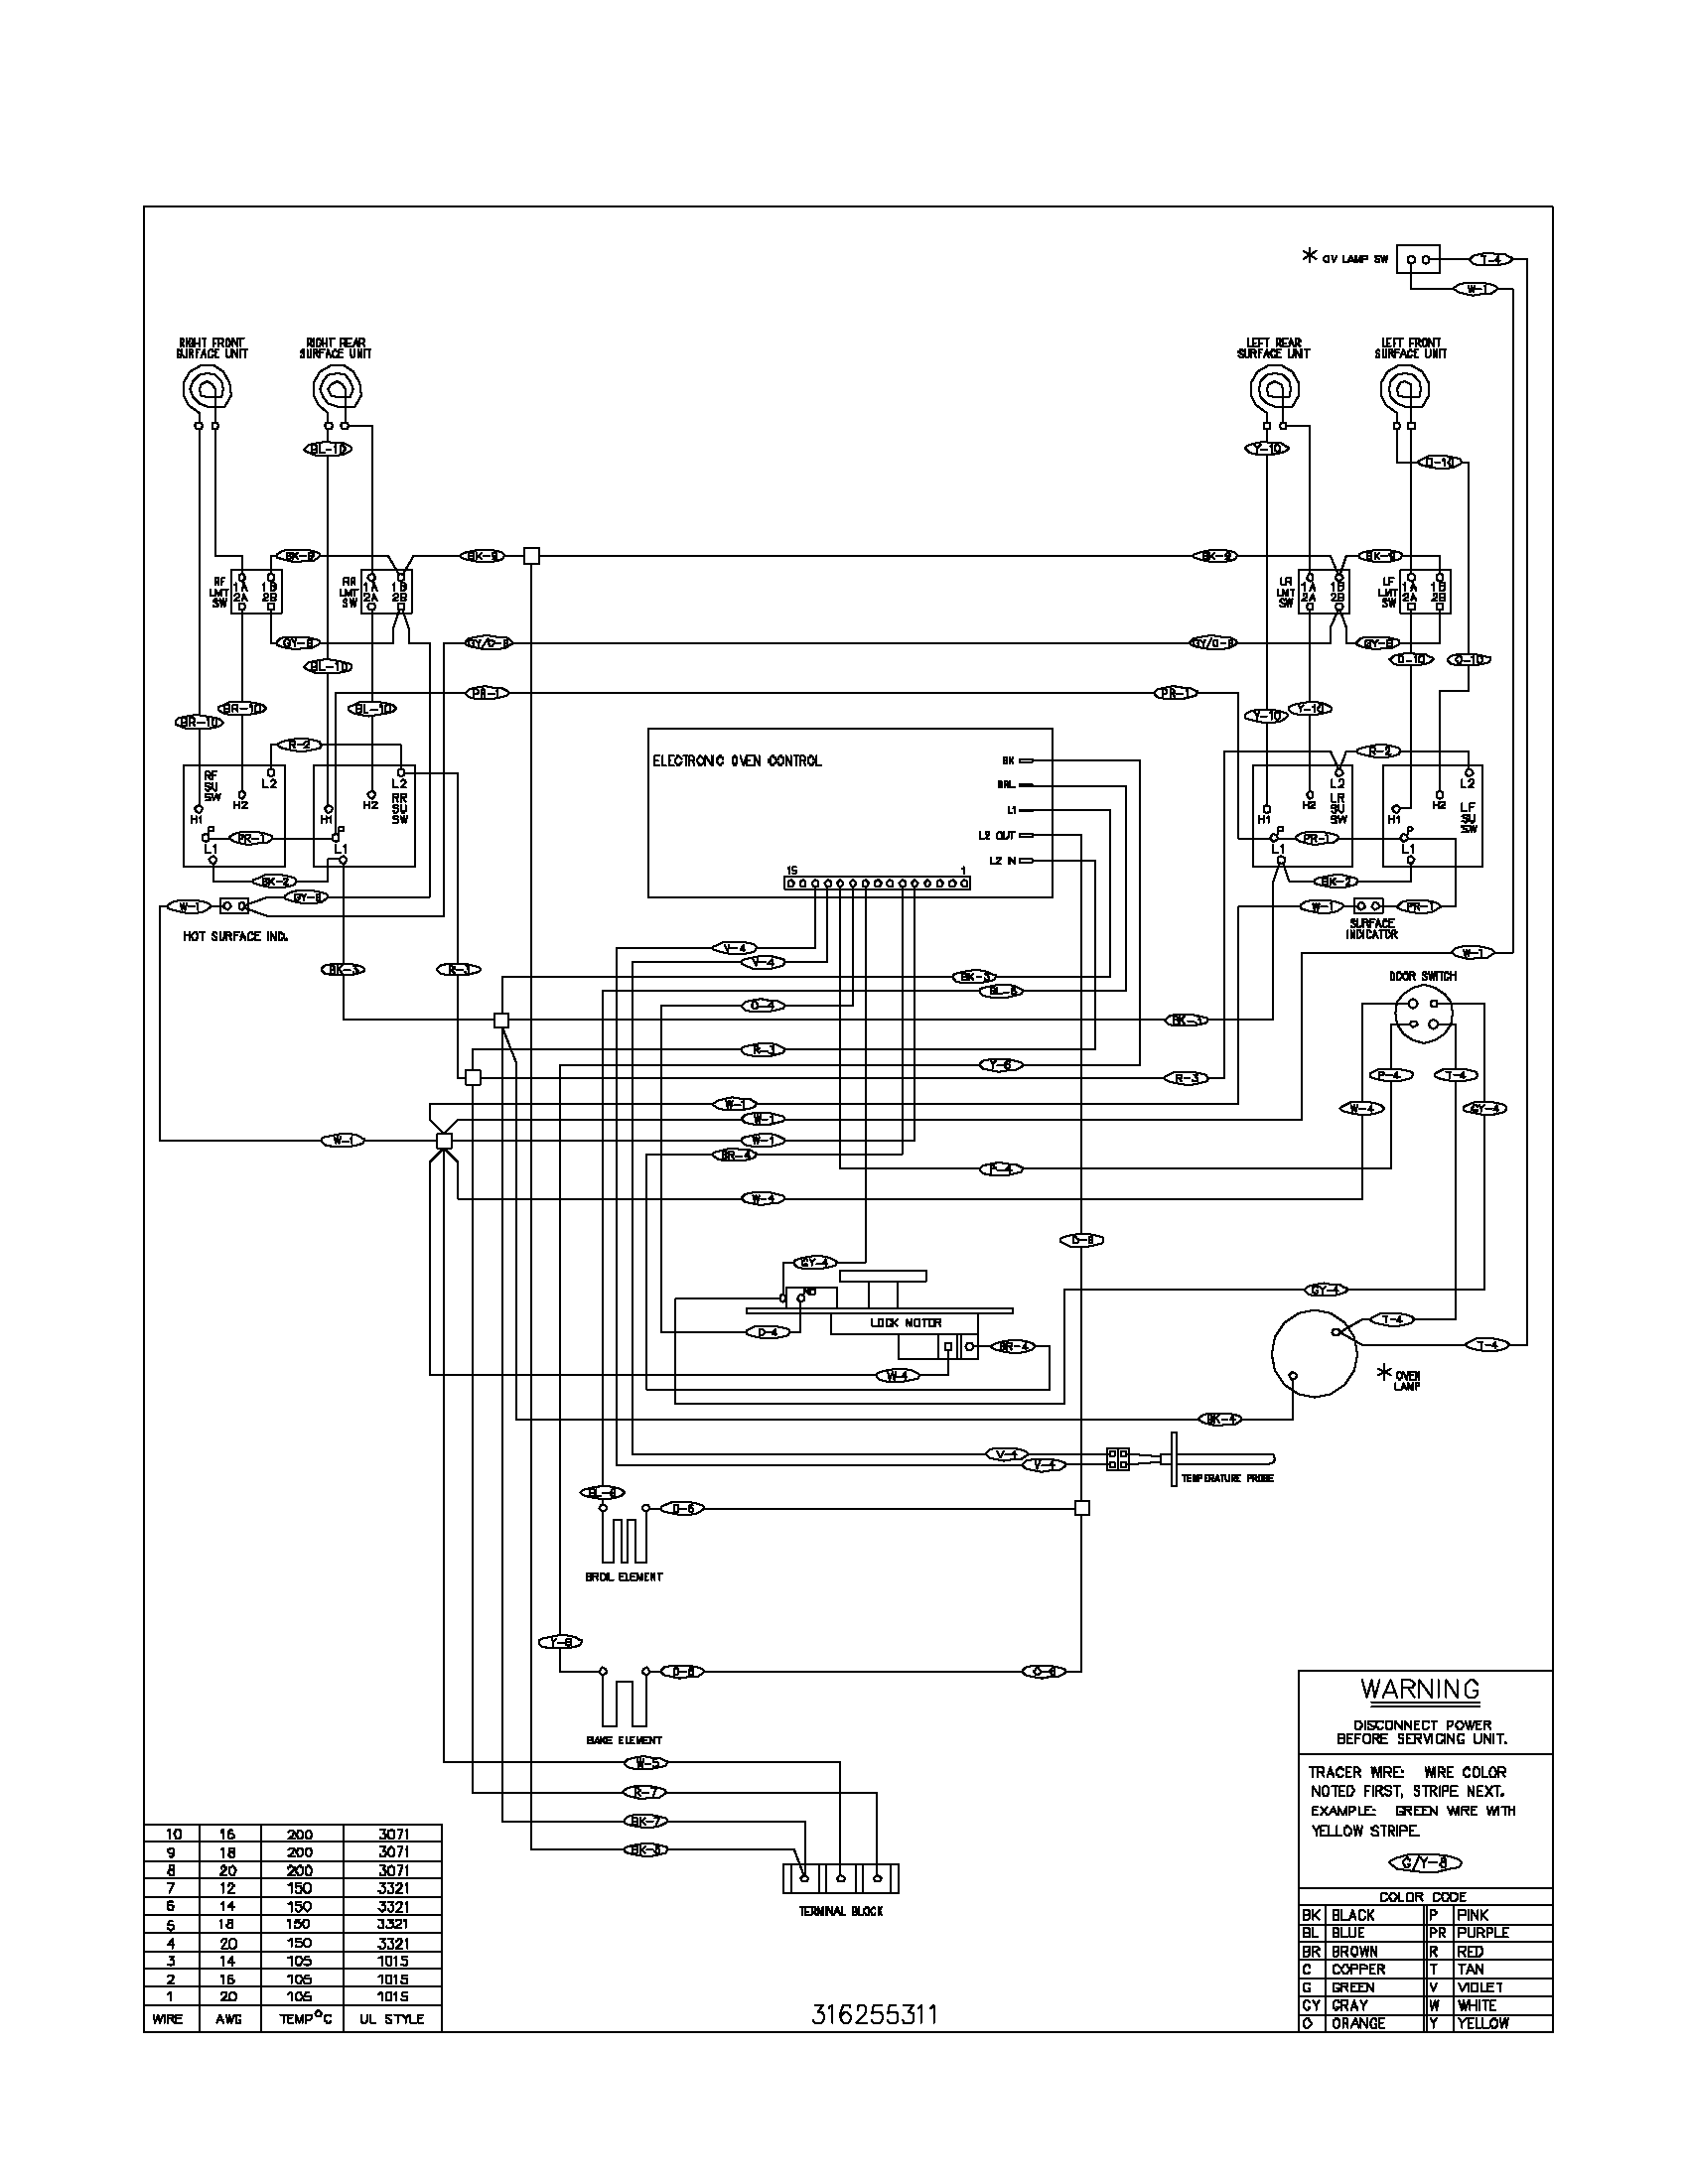 Wiring Diagram For Electric Dryer Frigidaire Gas Range Fe Diagrams Data Parts Fef366ccb